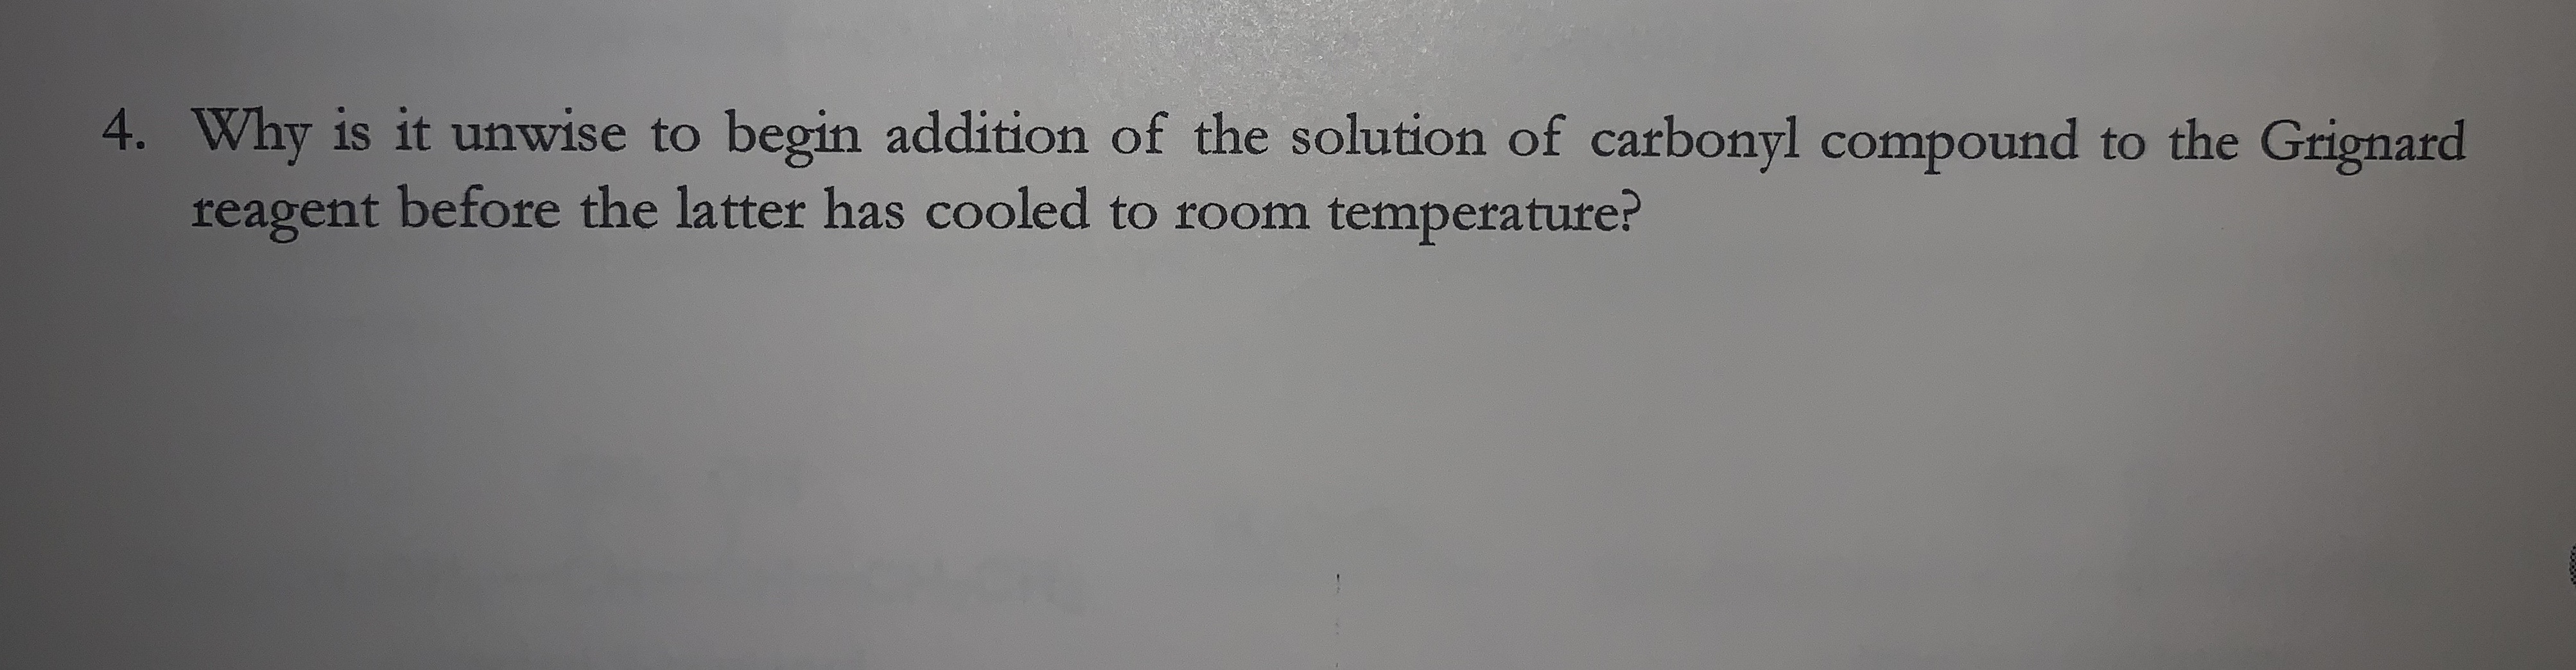 4. Why is it unwise to begin addition of the solution of carbonyl compound to the Grignard reagent before the latter has cooled to room temperature?